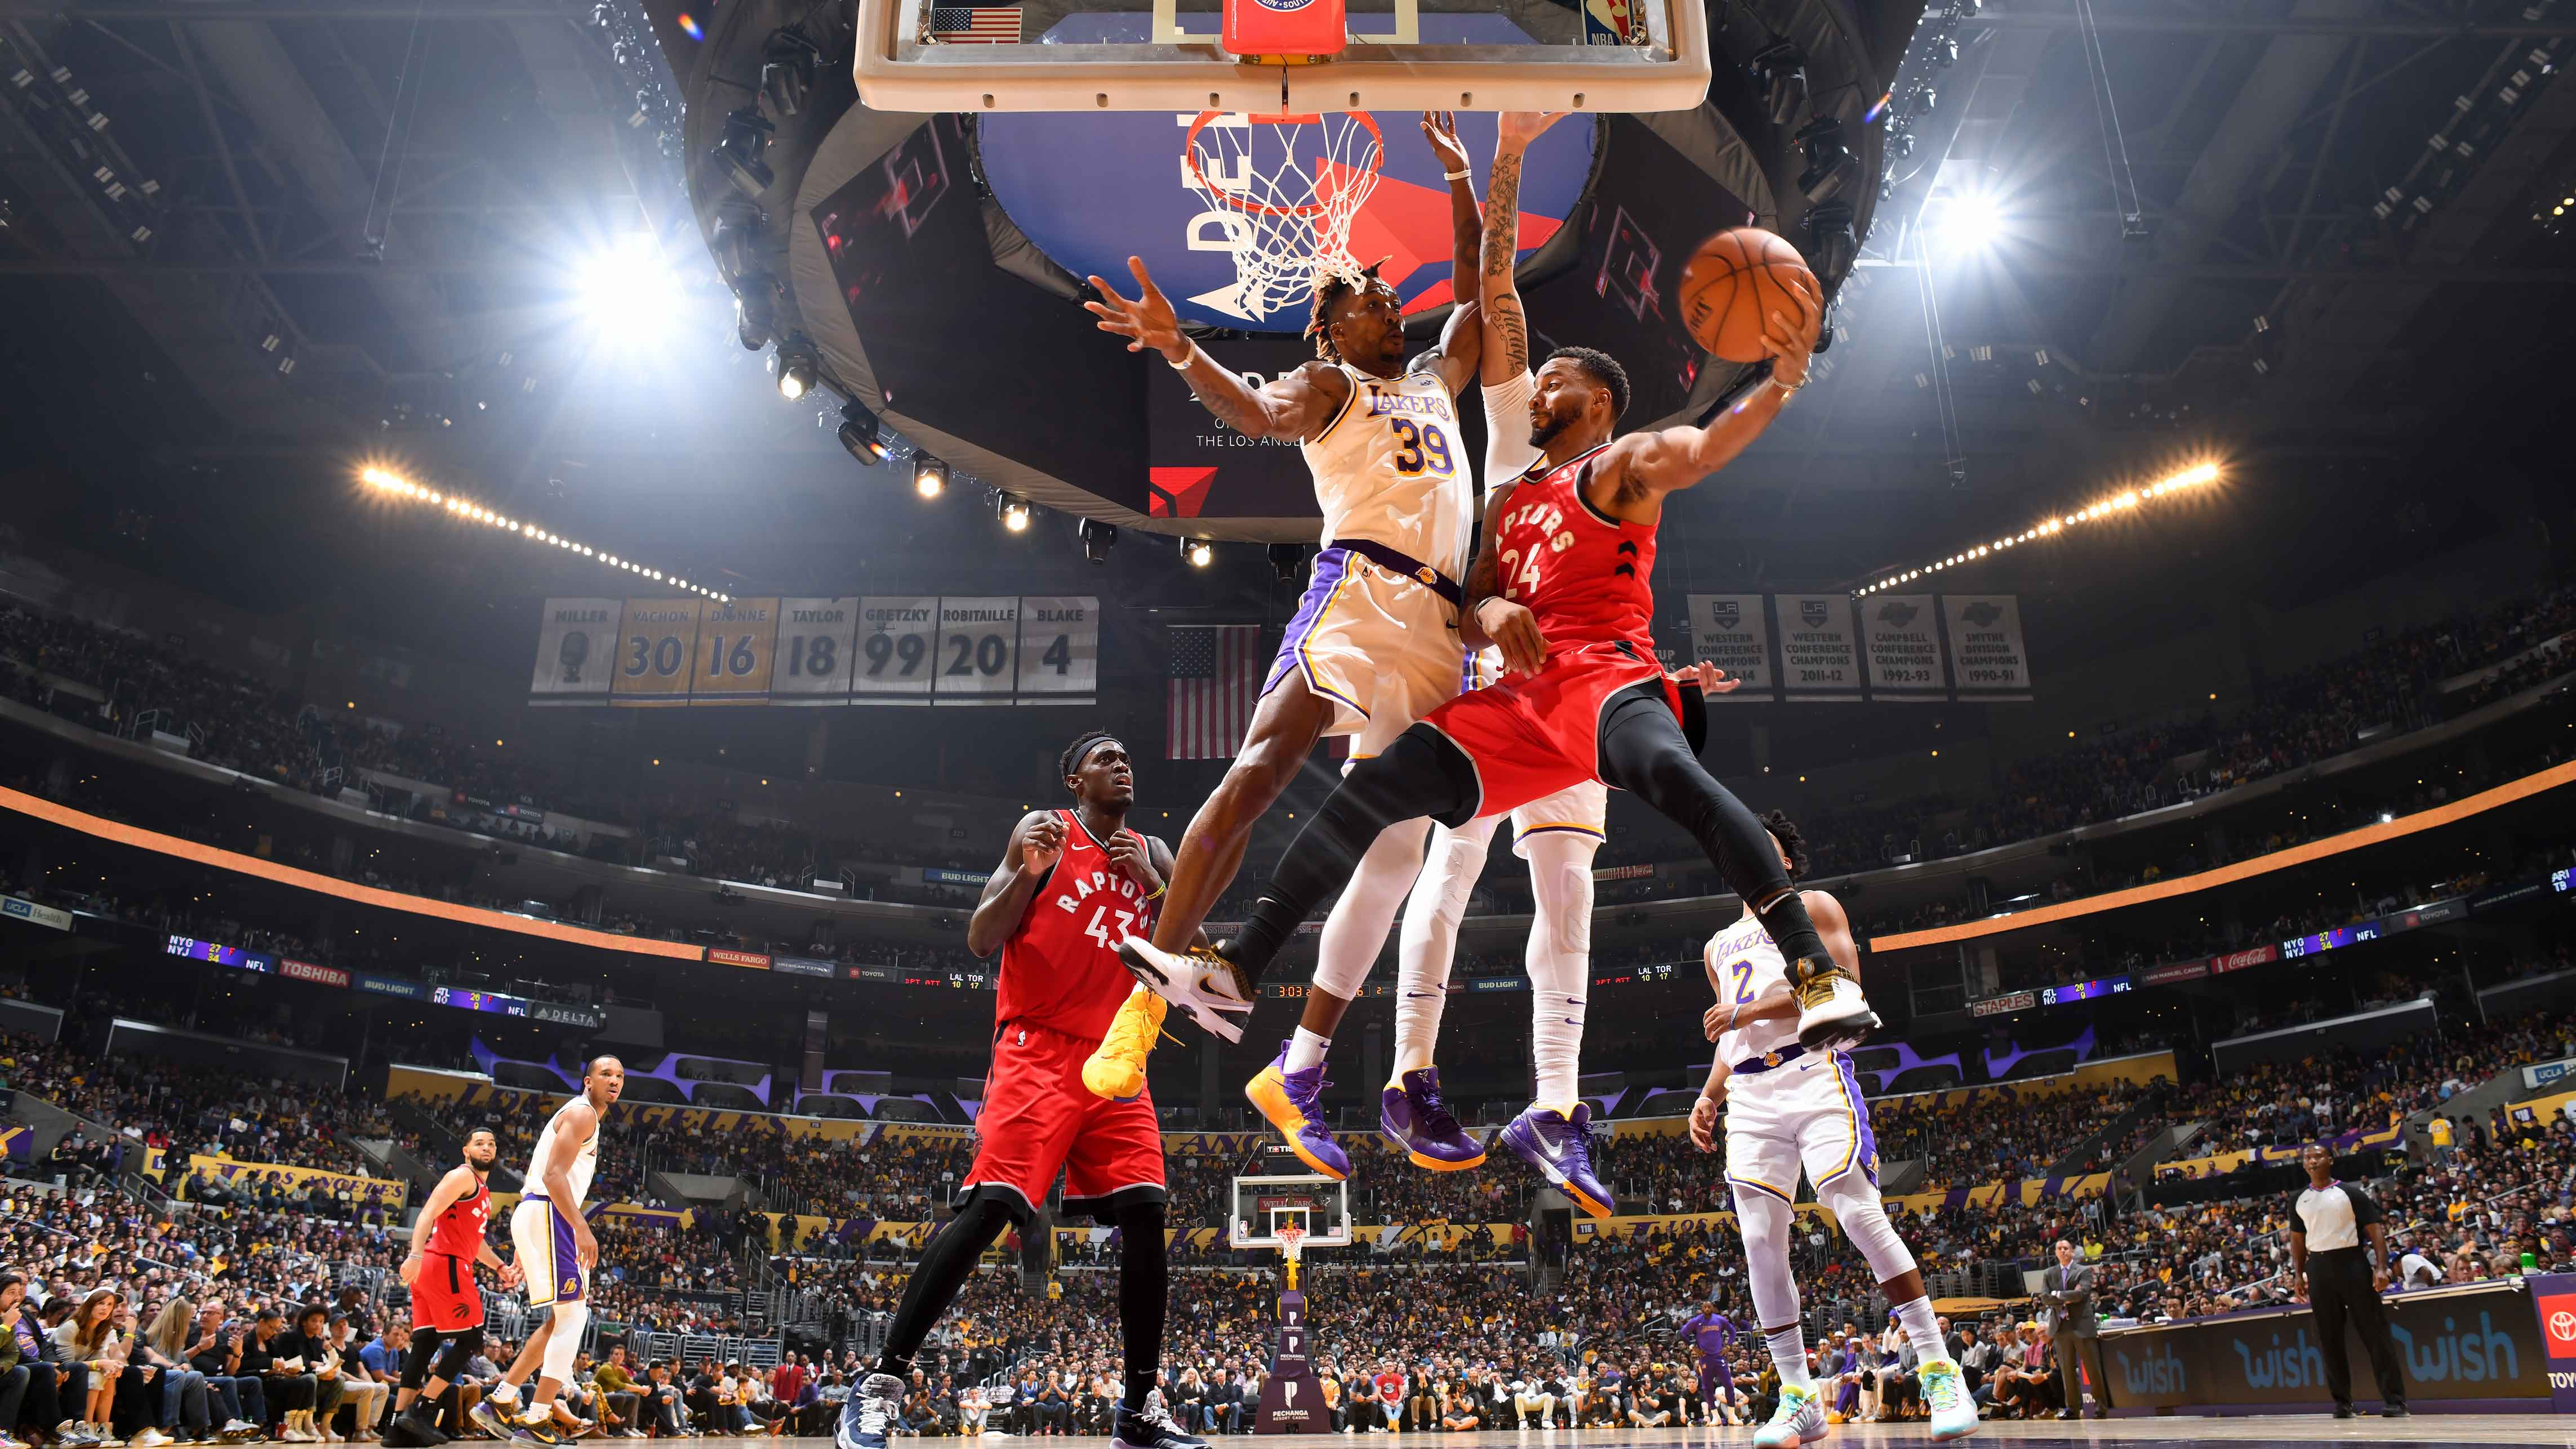 11.11.19. Обзор. GAME RECAP: Raptors 113, Lakers 104